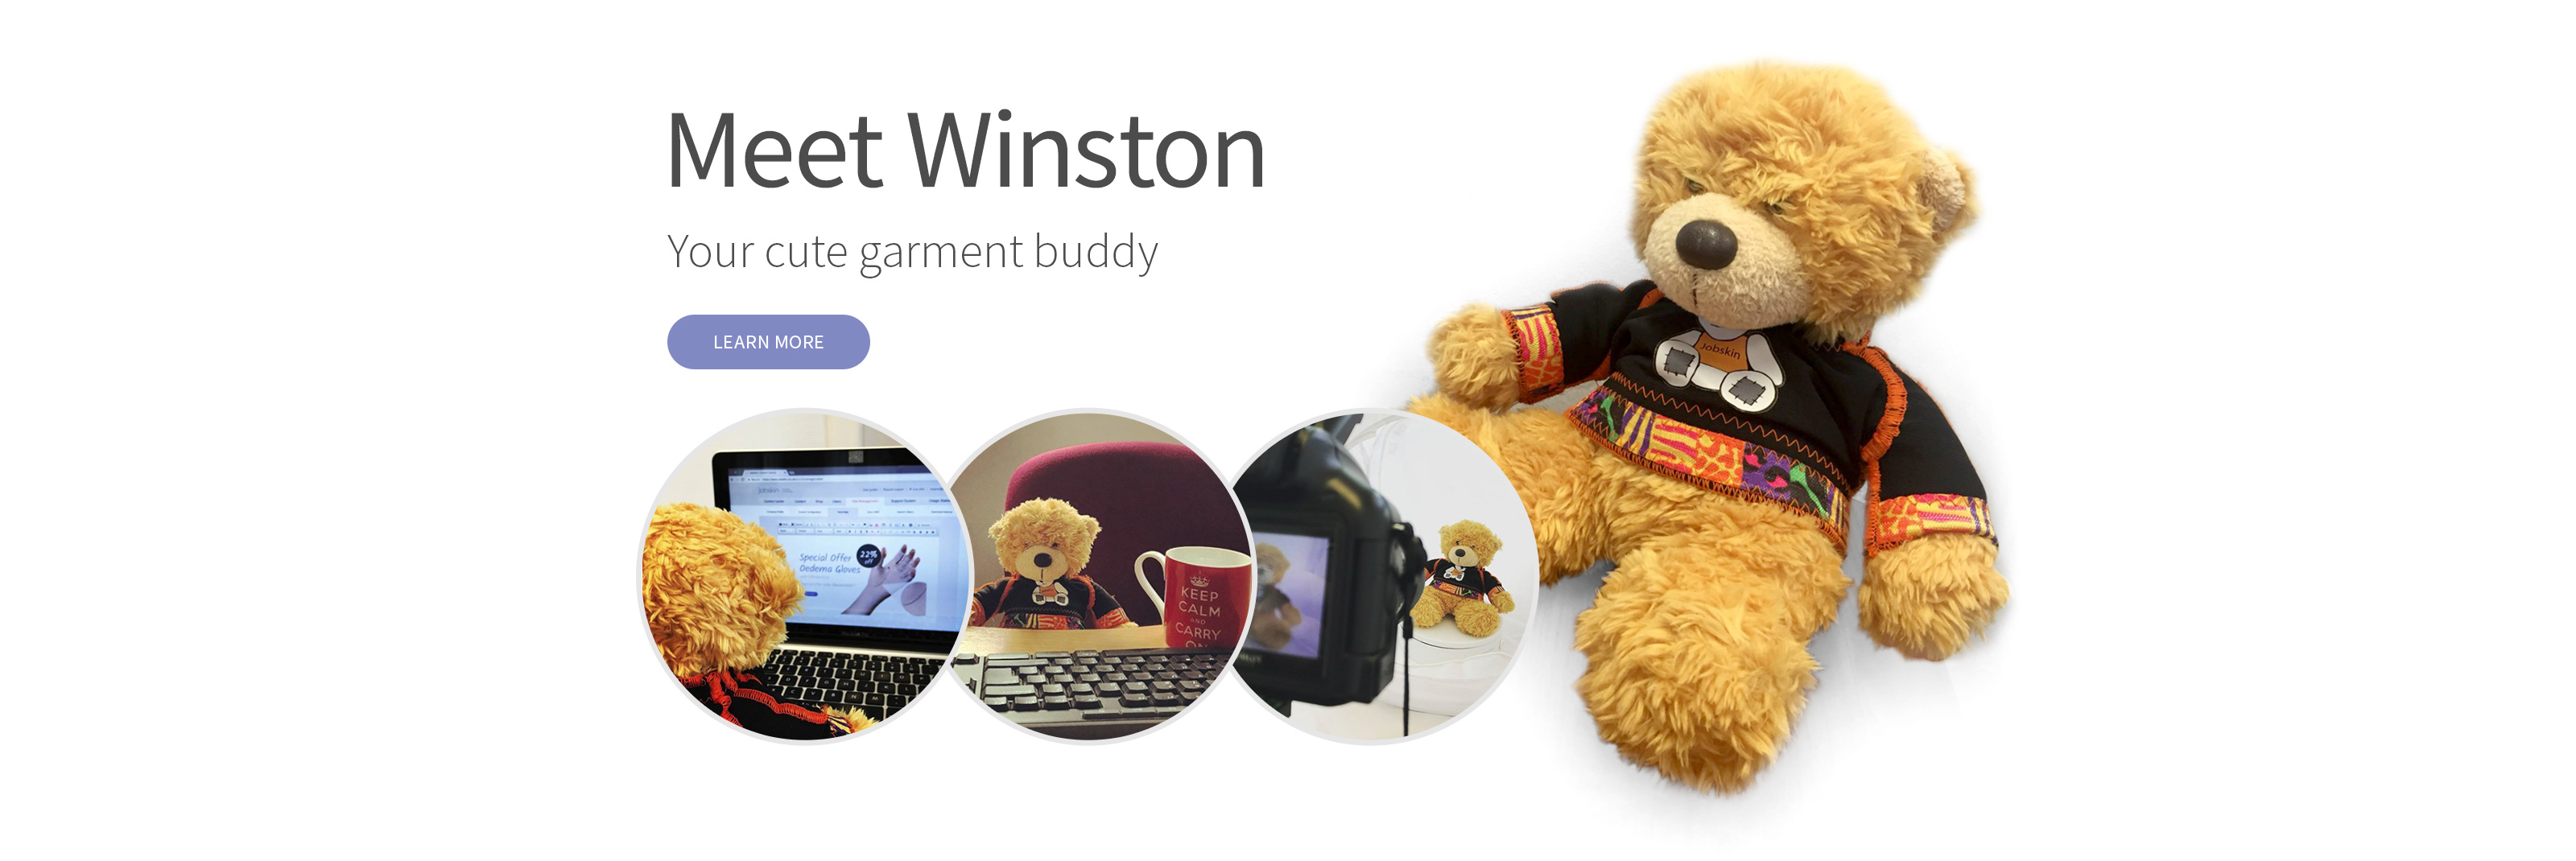 Meet Winston — Your cure garment buddy